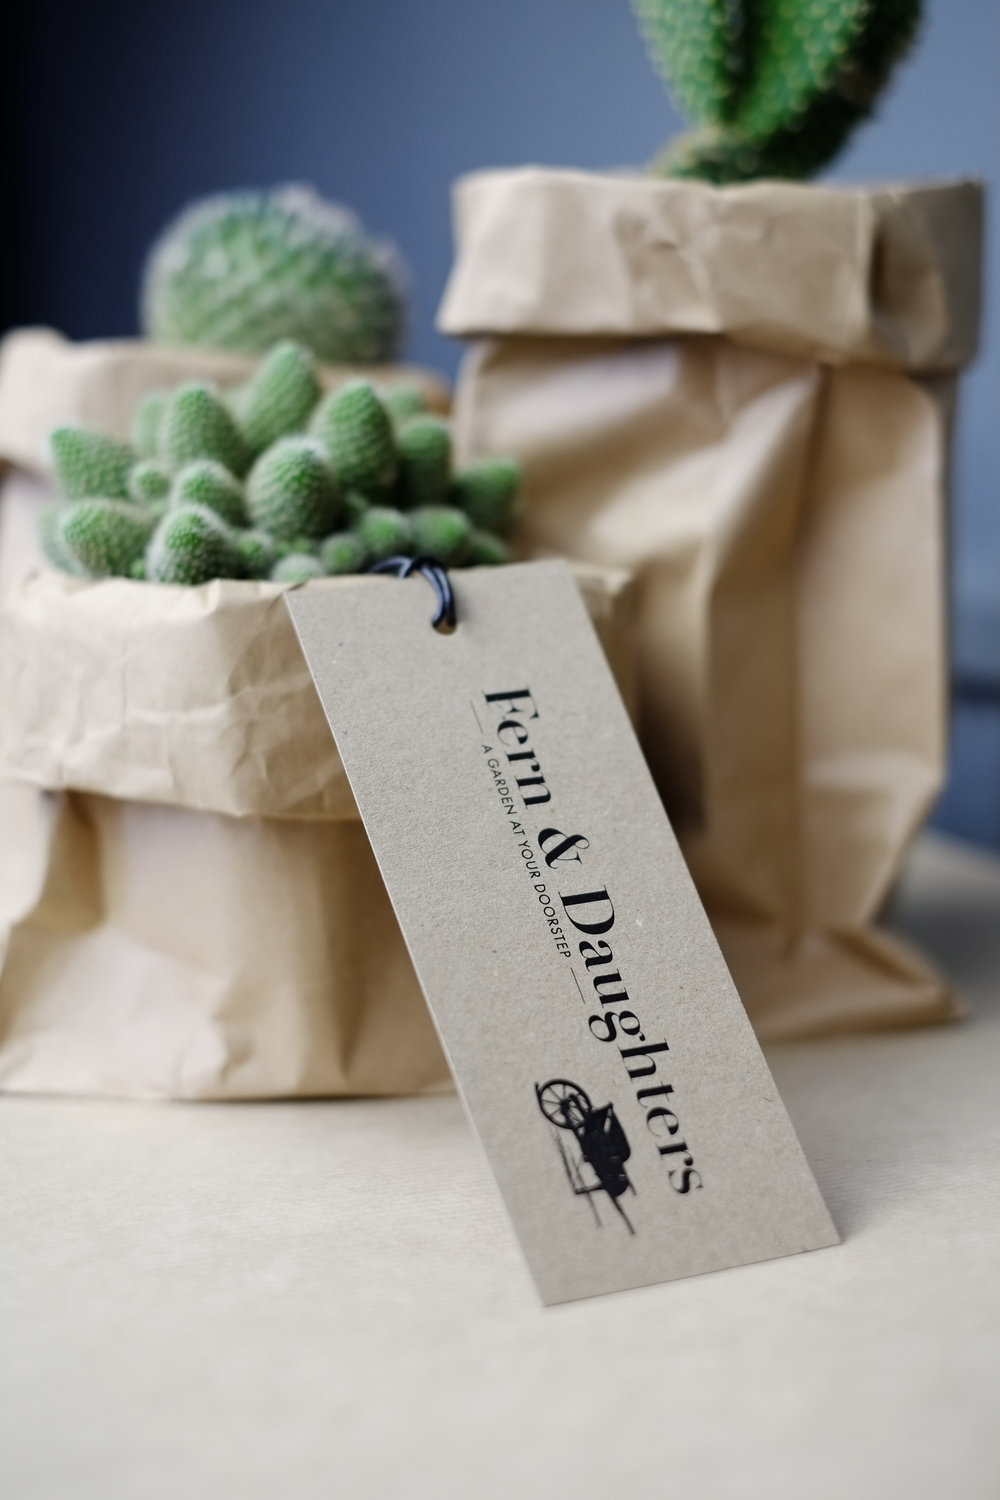 FERN AND DAUGHTERS, WEB SHOP, TAGS, BUSINESS CARD AND STATIONERY.